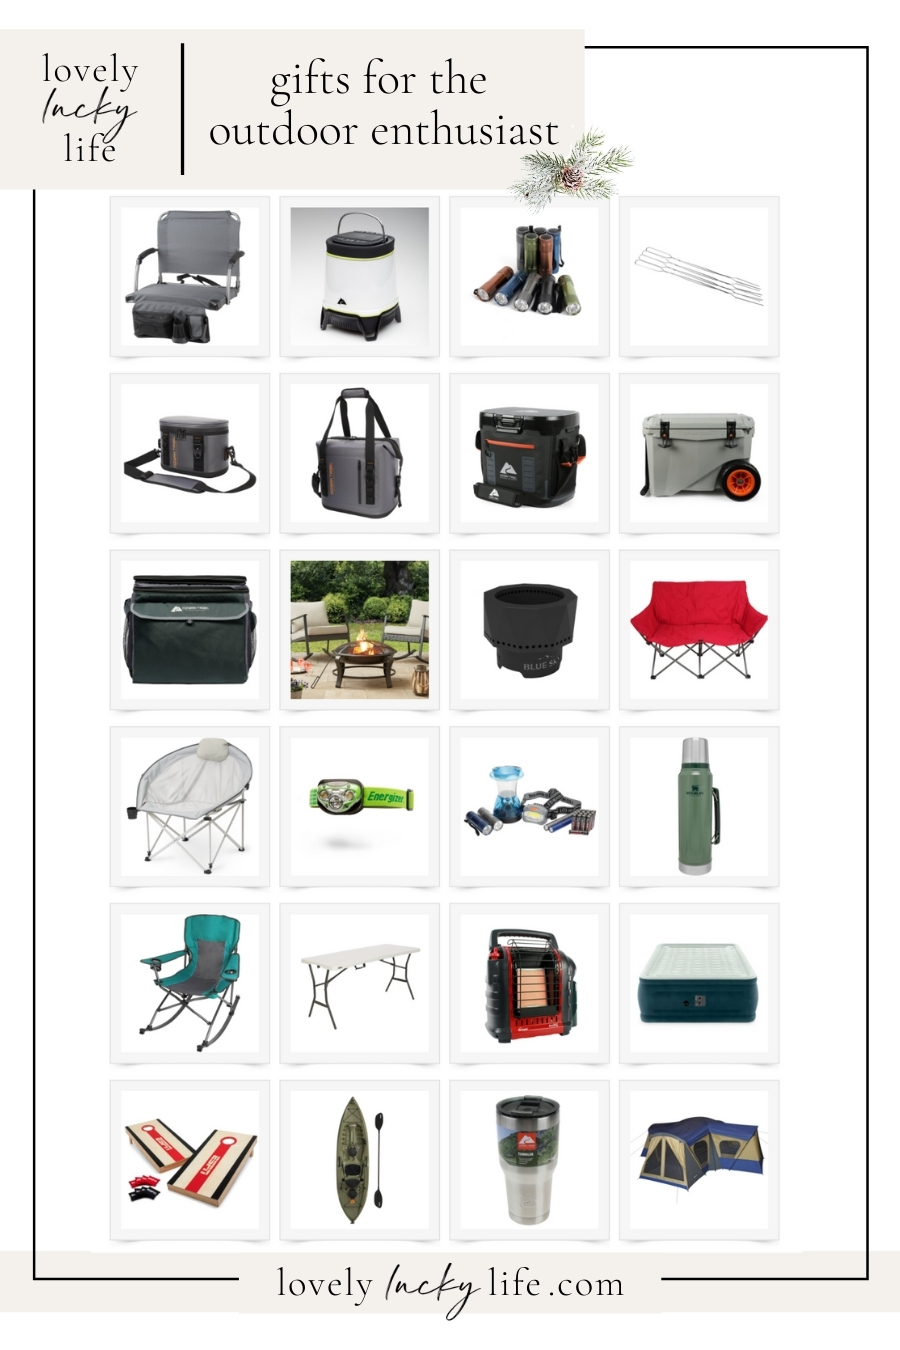 great gift ideas for campers on this list! tons of affordable outdoor gifts